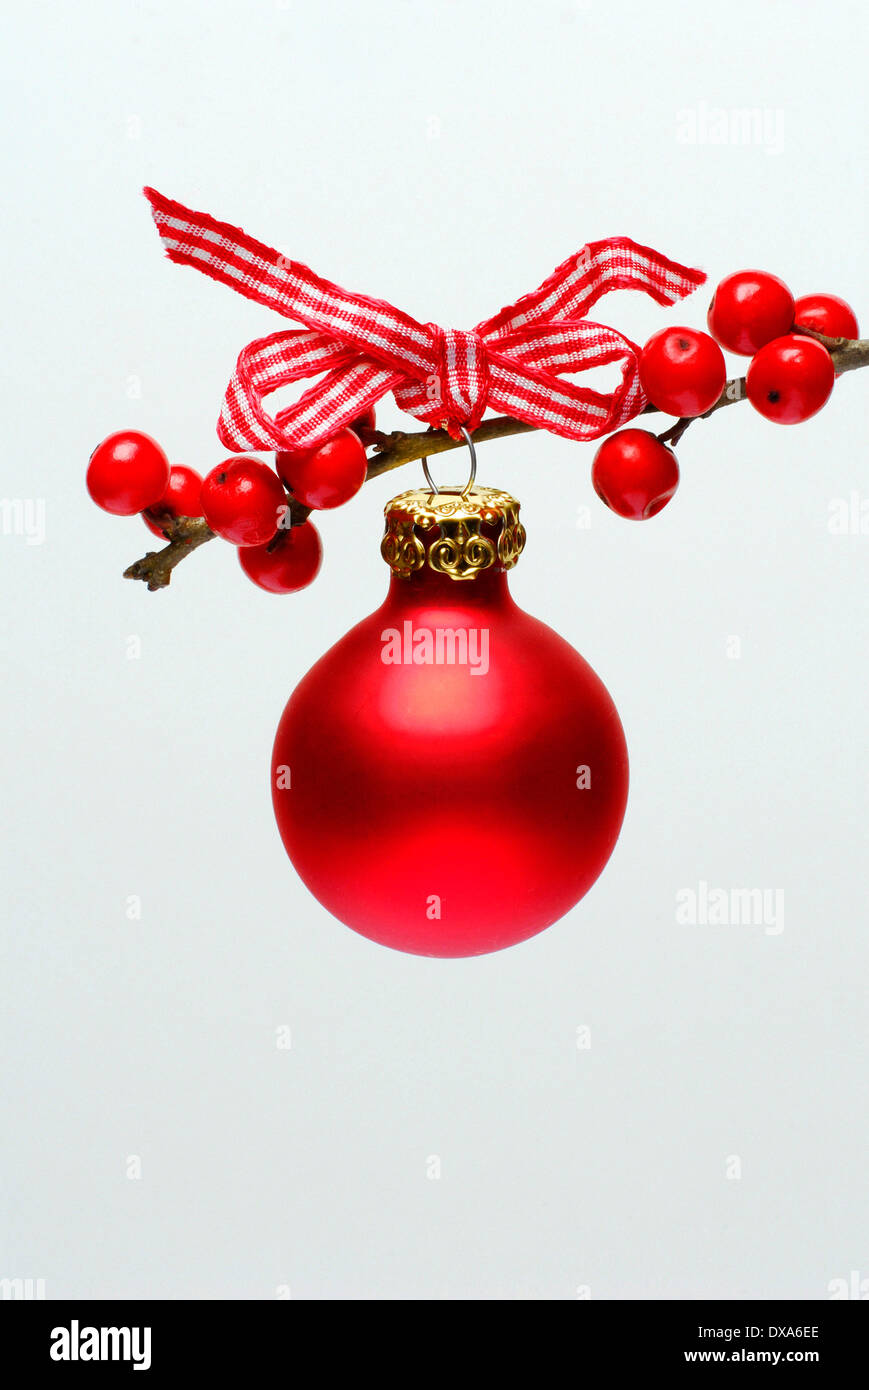 Christmas ball on Holly twig - Stock Image